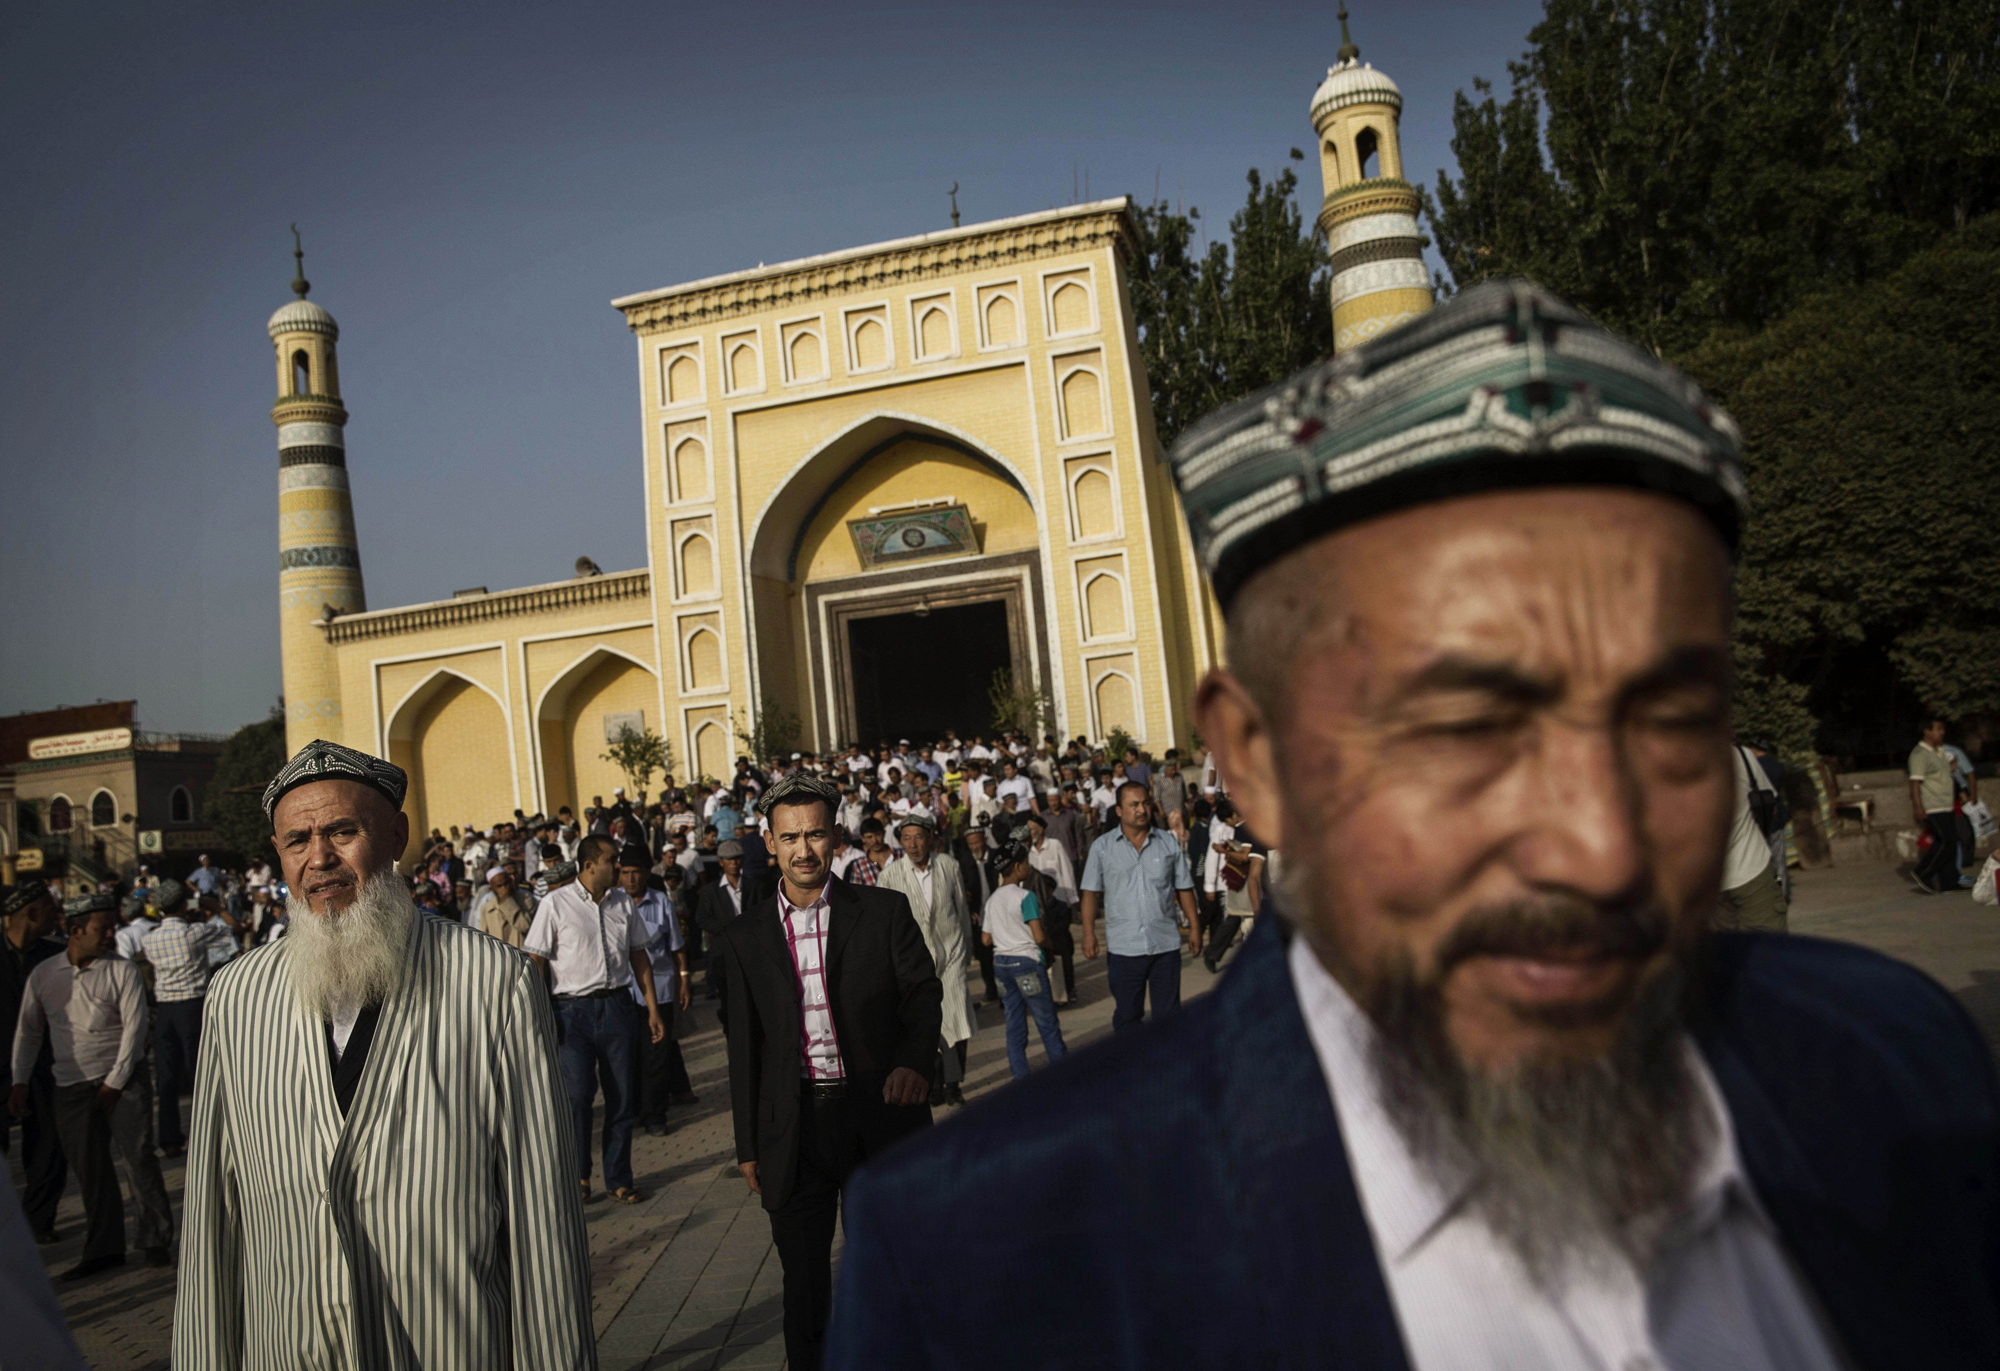 Uighur men leave the Id Kah Mosque following the Eid prayers on July 29, 2014 in old Kashgar, Xinjiang Province, China.